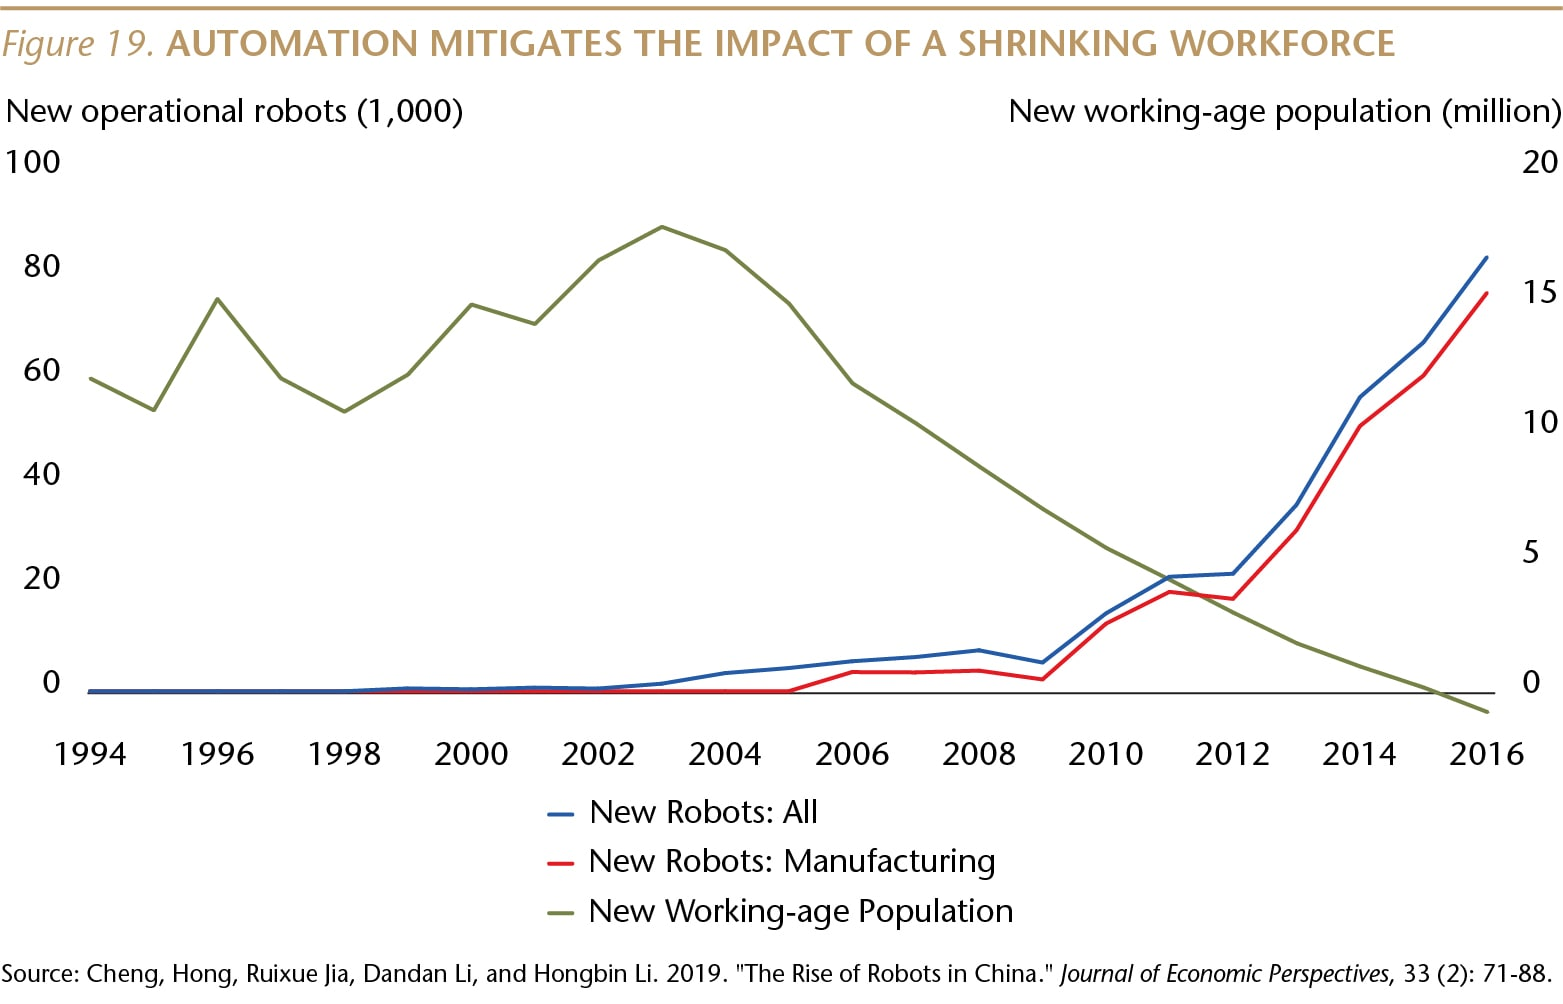 SI073_Figure 19_Automation mitigates shrinking workforce_WEB-01-min.jpg